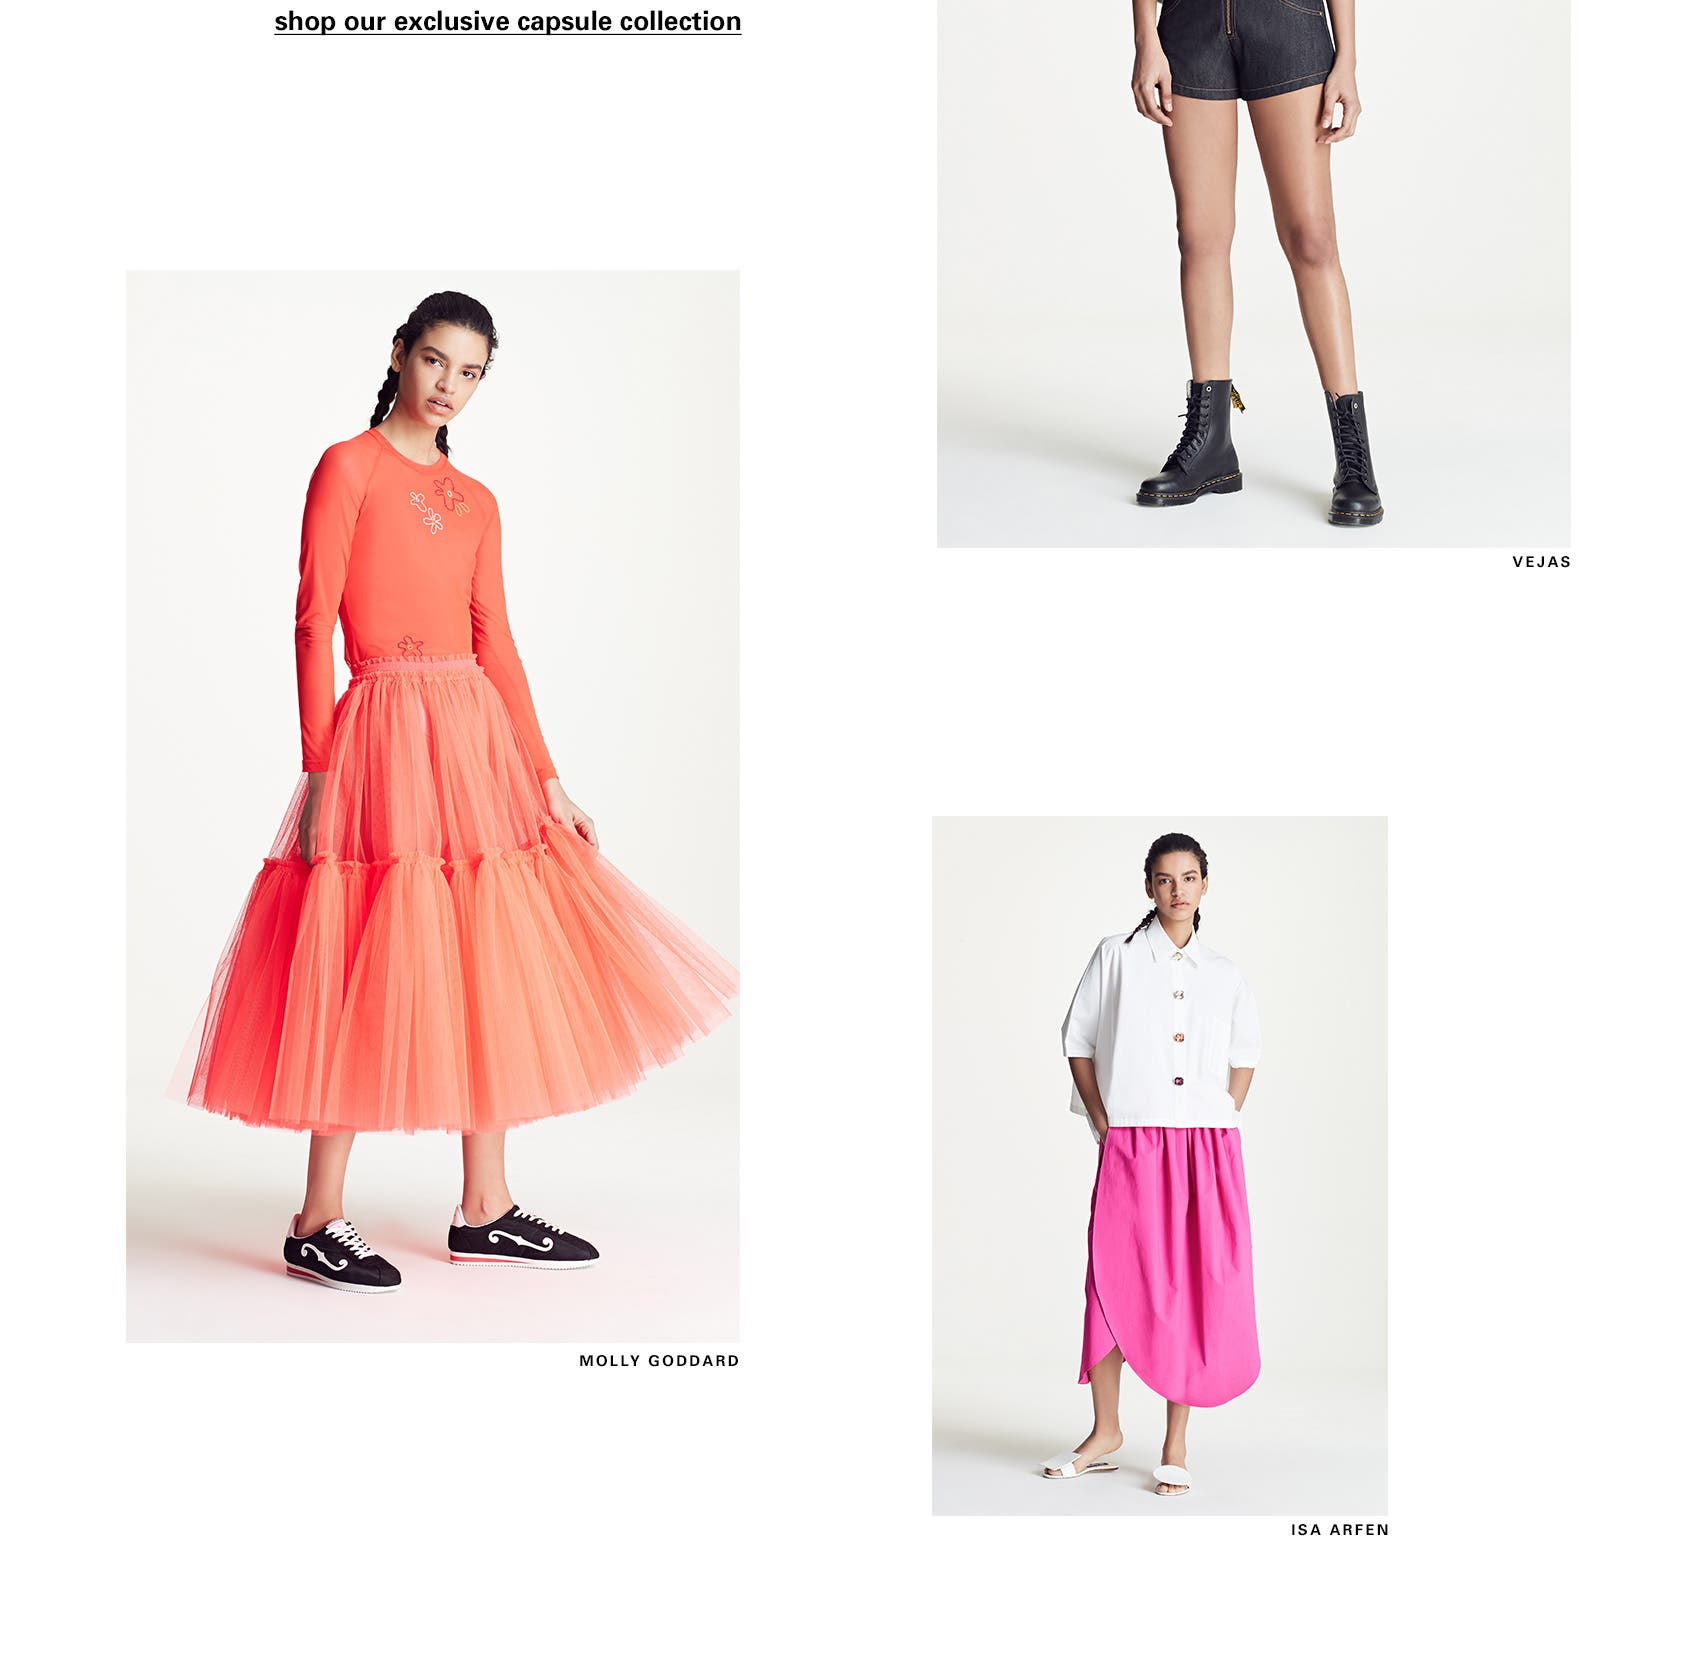 Hot town, summer in the city: an exclusive SPACE summer collection by Molly Goddard, Vejas, Marques'Almeida and more.